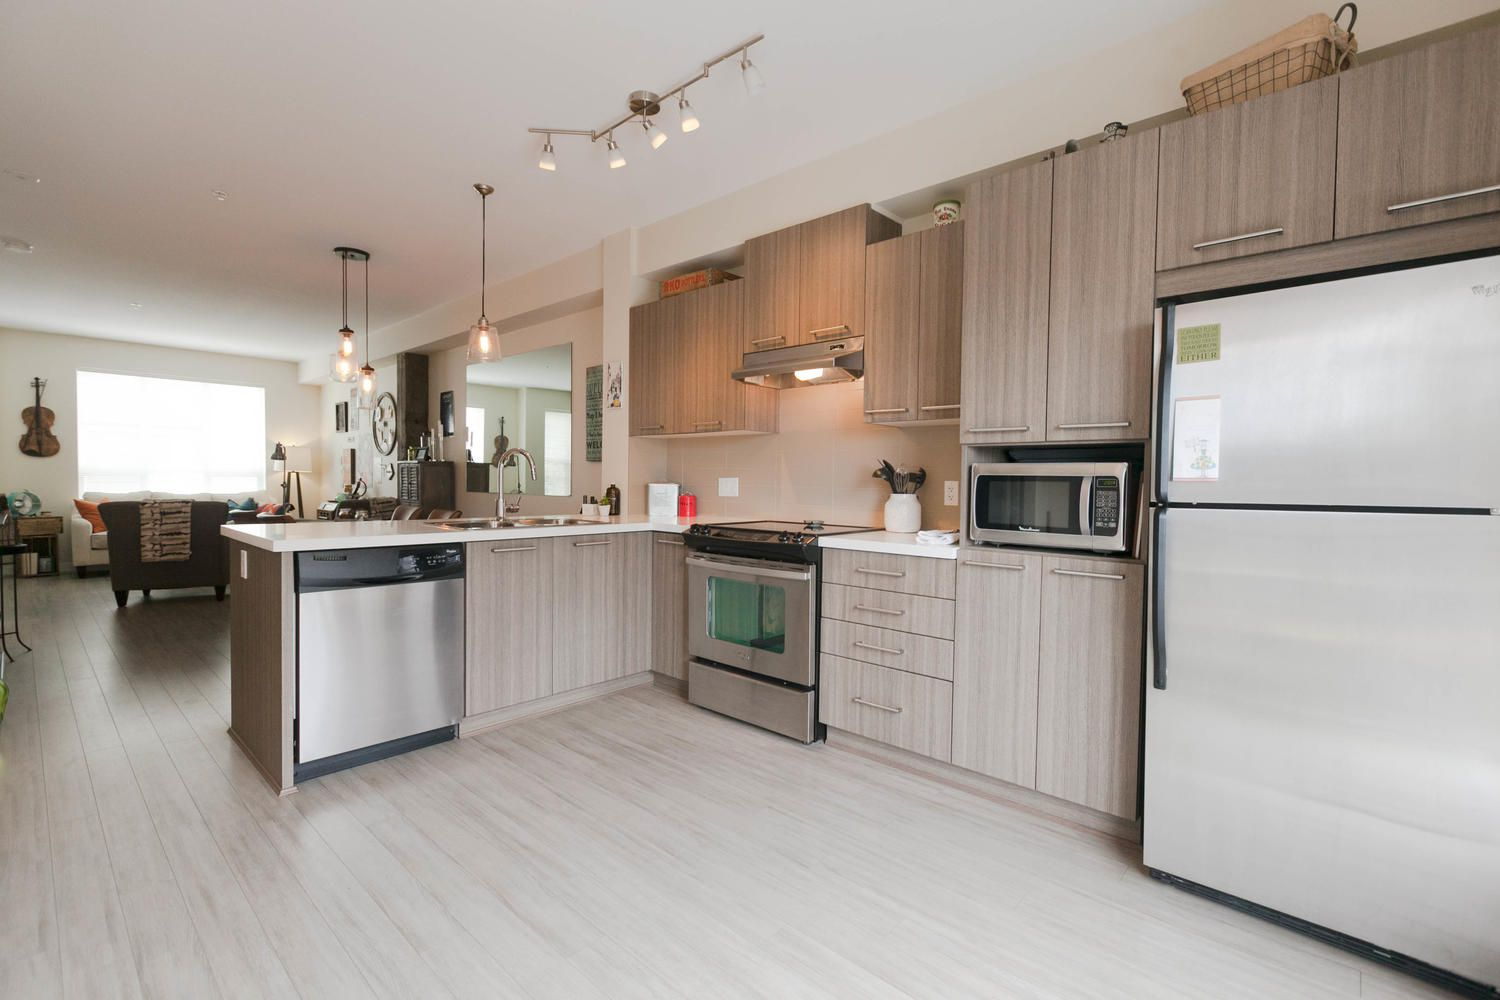 """Photo 14: Photos: 97 7938 209 Street in Langley: Willoughby Heights Townhouse for sale in """"Red Maple Park"""" : MLS®# R2260950"""